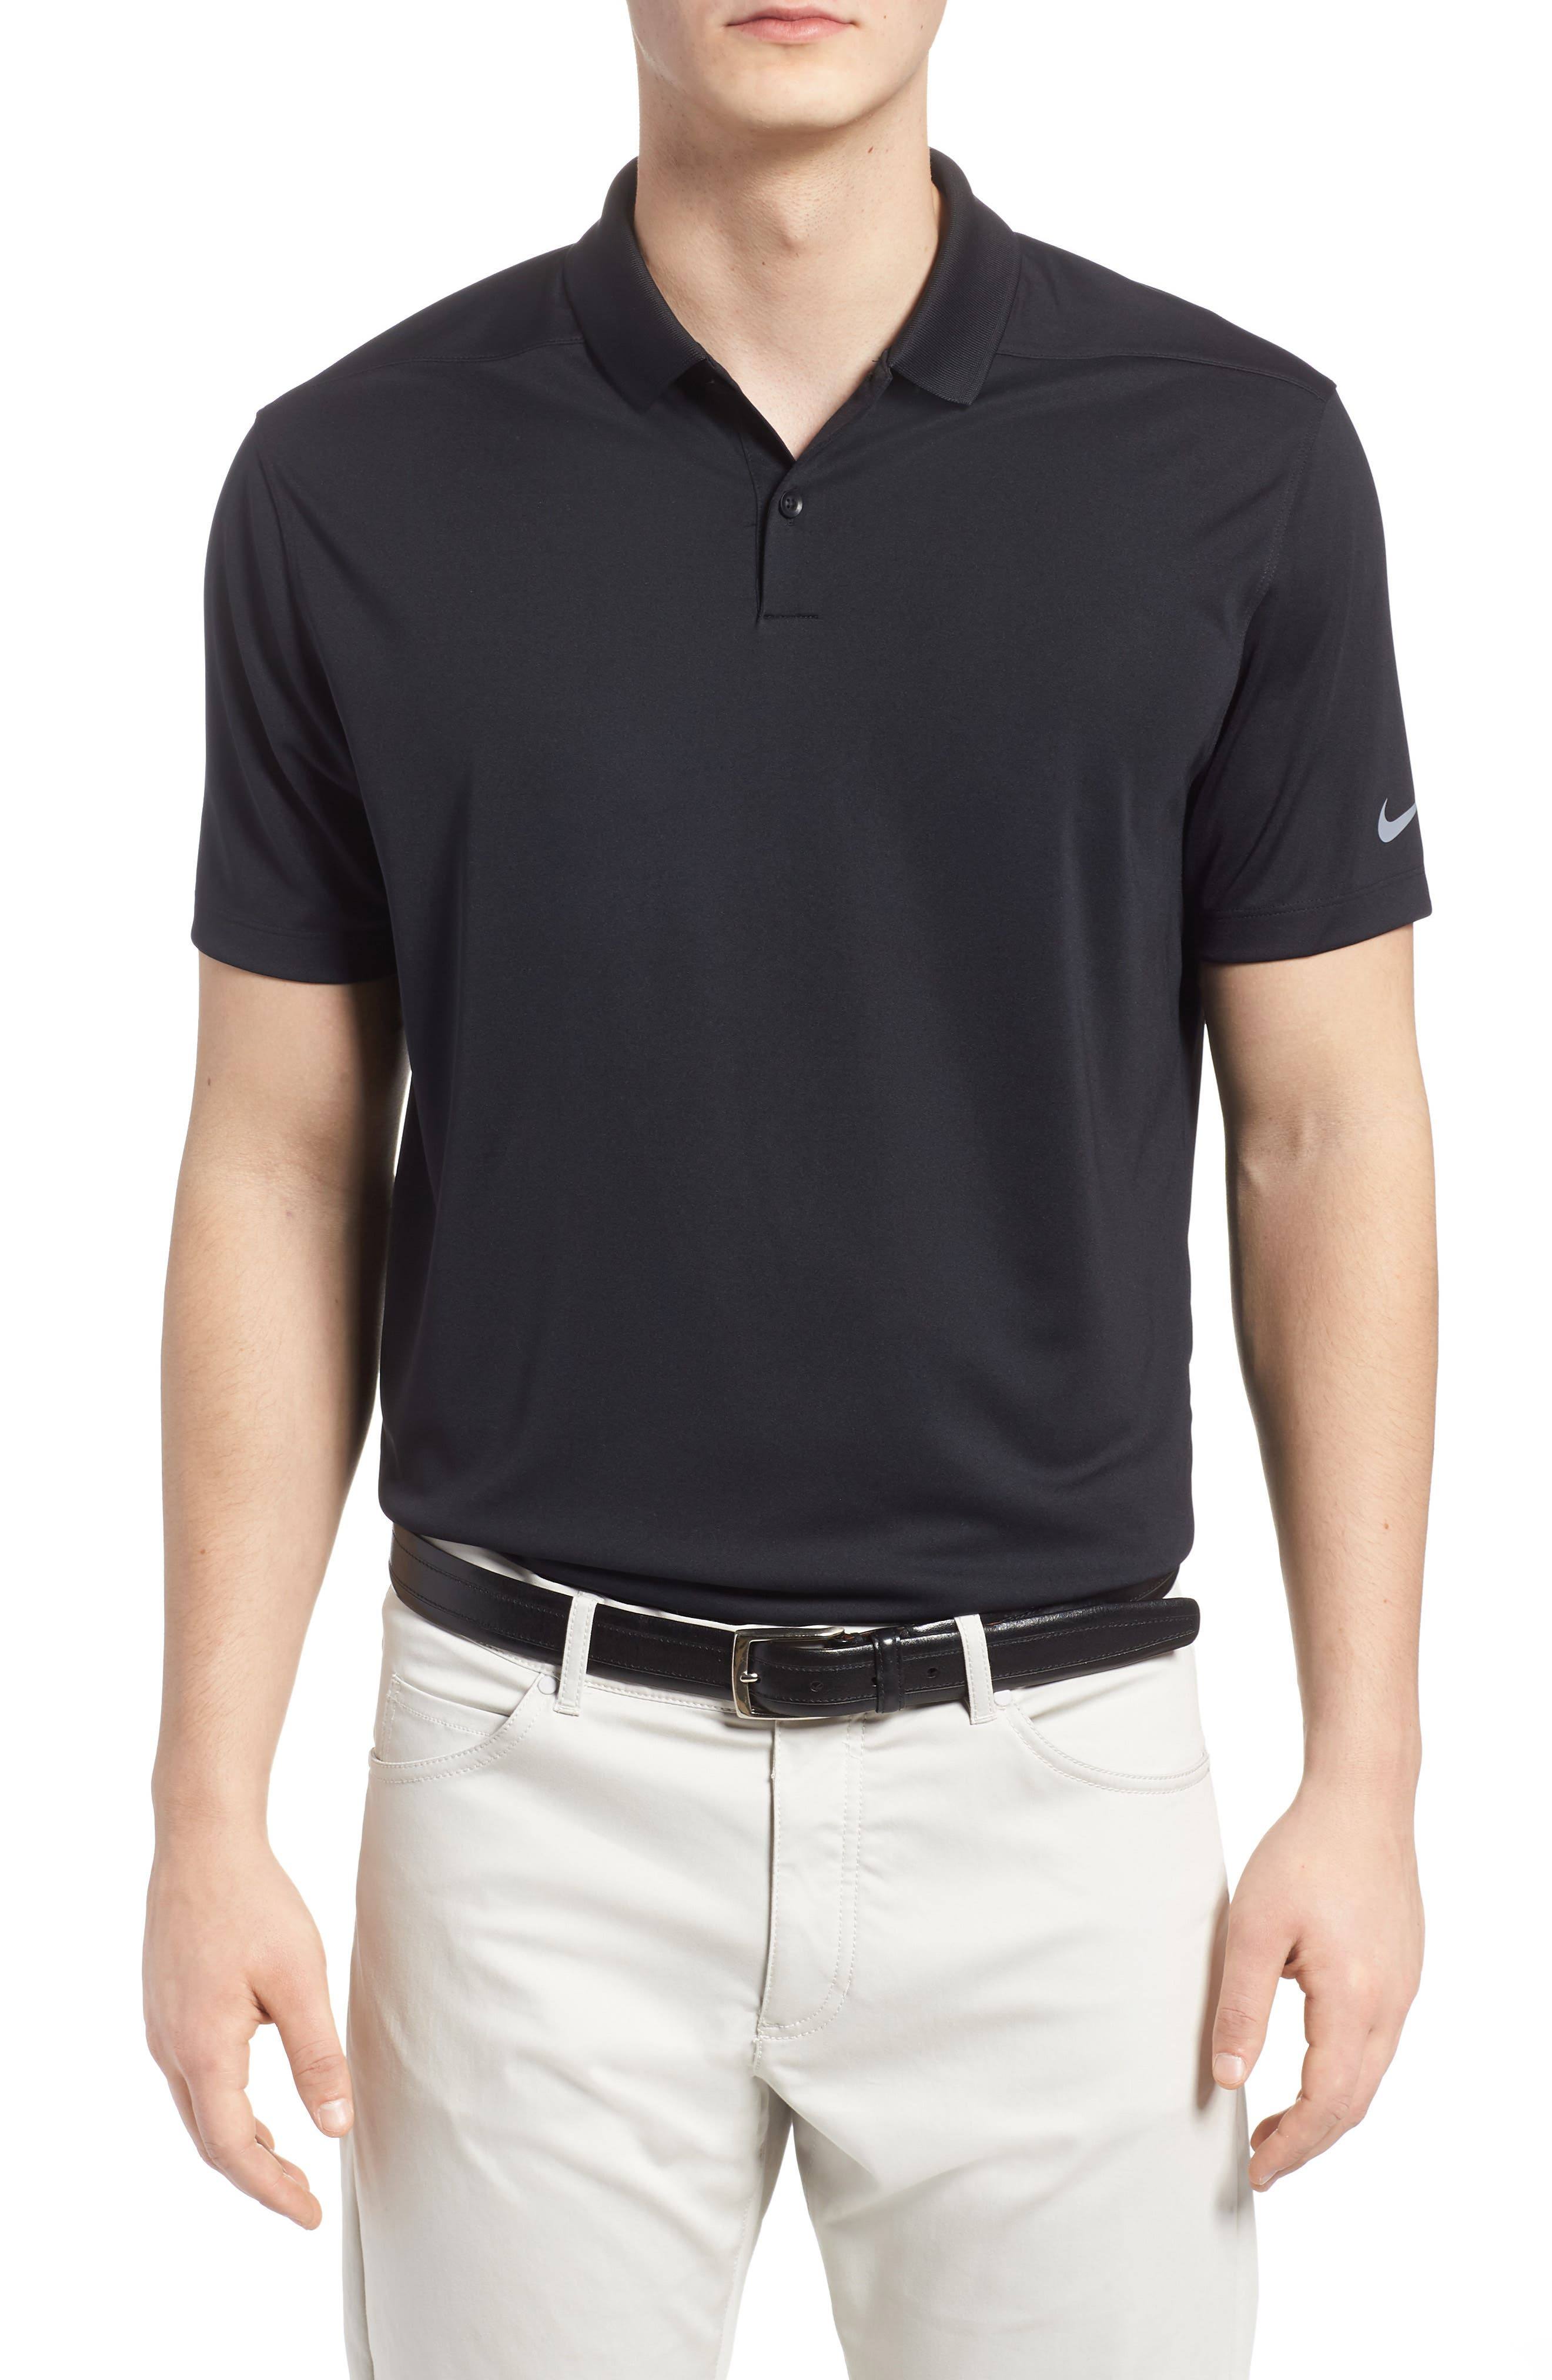 NIKE, Victory Dri-FIT Golf Polo, Main thumbnail 1, color, BLACK/ GUNSMOKE